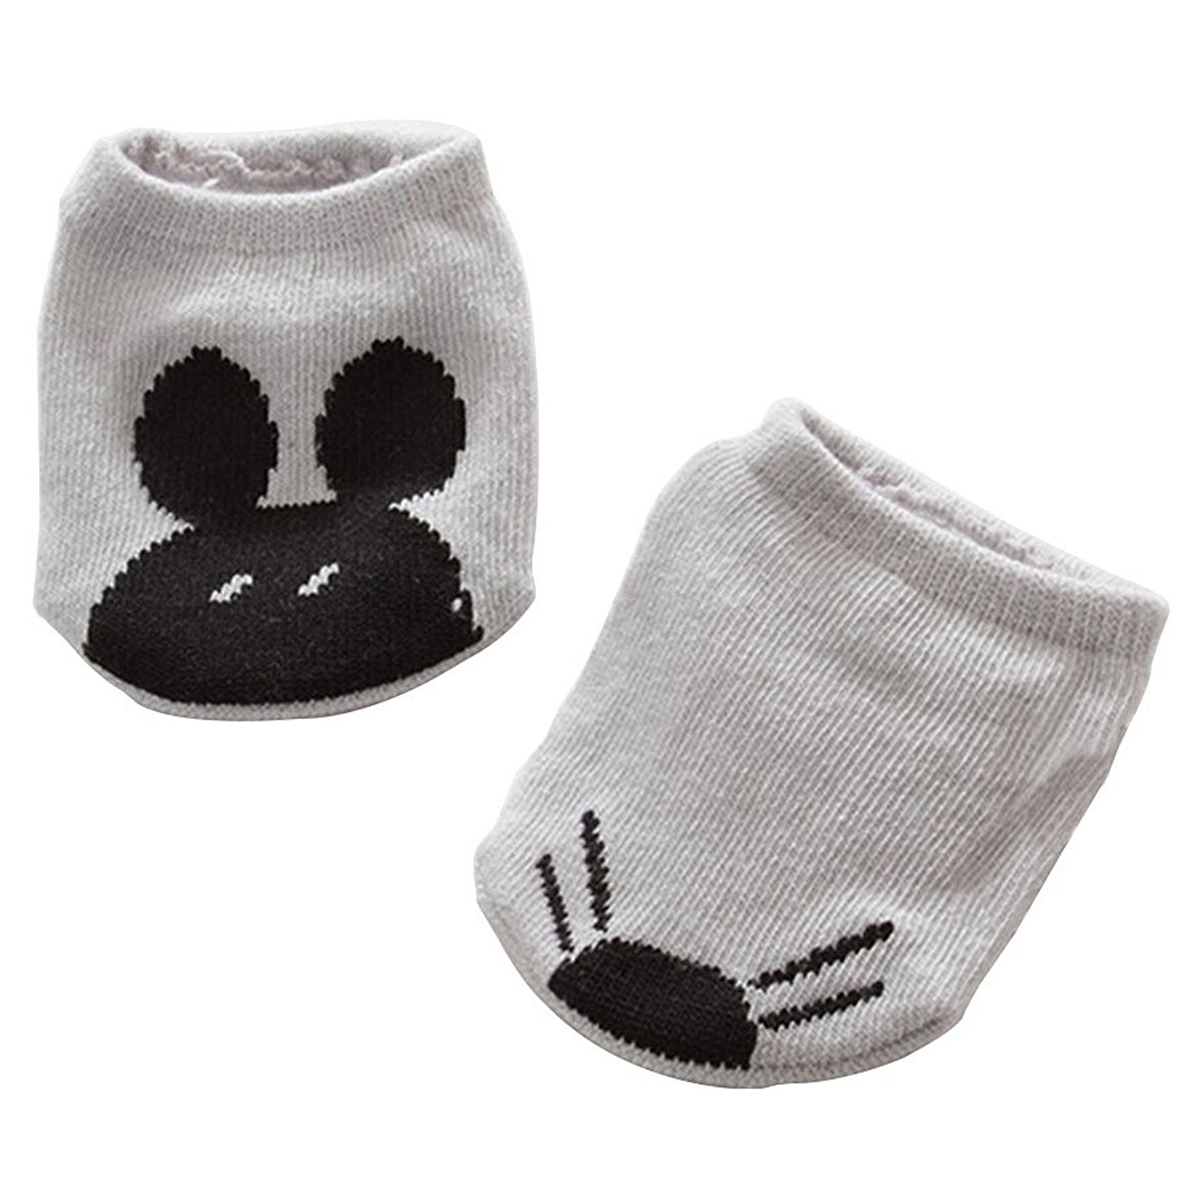 ABWE Best Sale KACAKID Baby Girls Boys Cute Cartoon Socks Newborn Infant Cotton Socks Gr ...